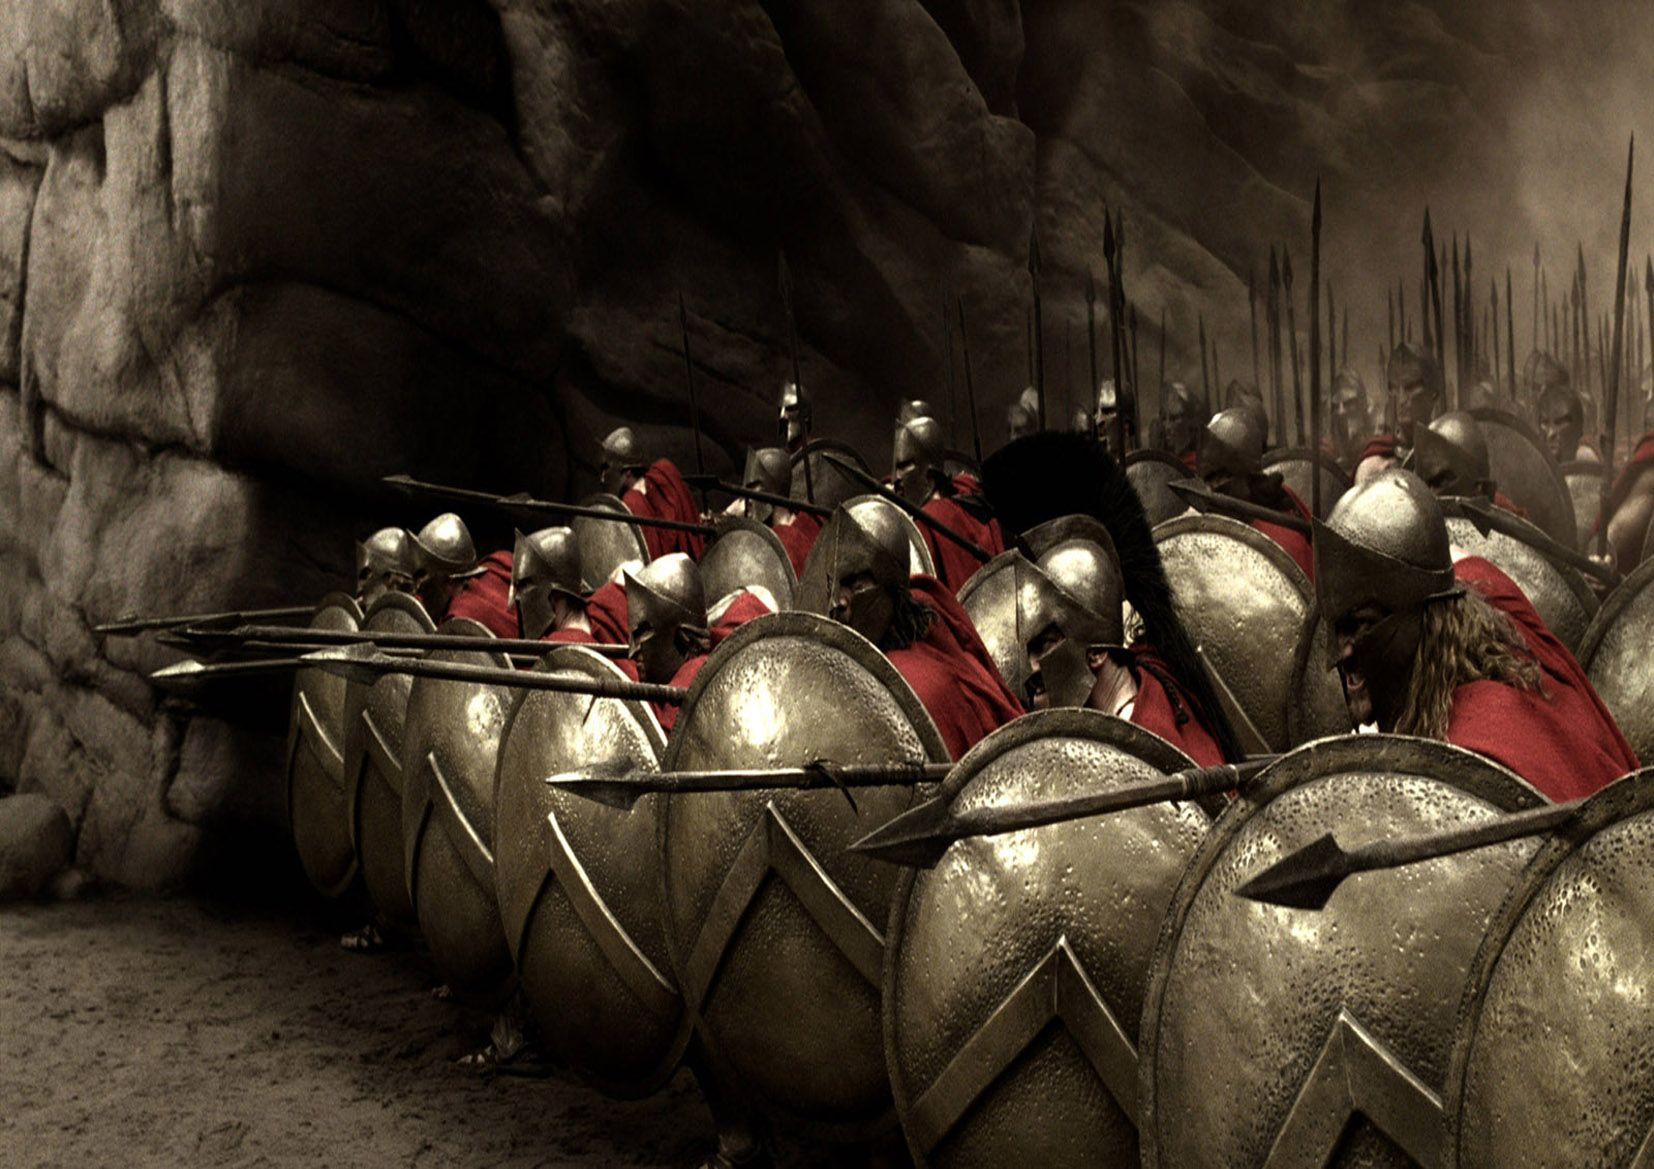 battle of thermopylae and spartan army The battle of thermopylae was the first between the persians and greeks during the persian invasion of 480-479 bc the greek force was very small but was determined to make a stand against the huge persian army.